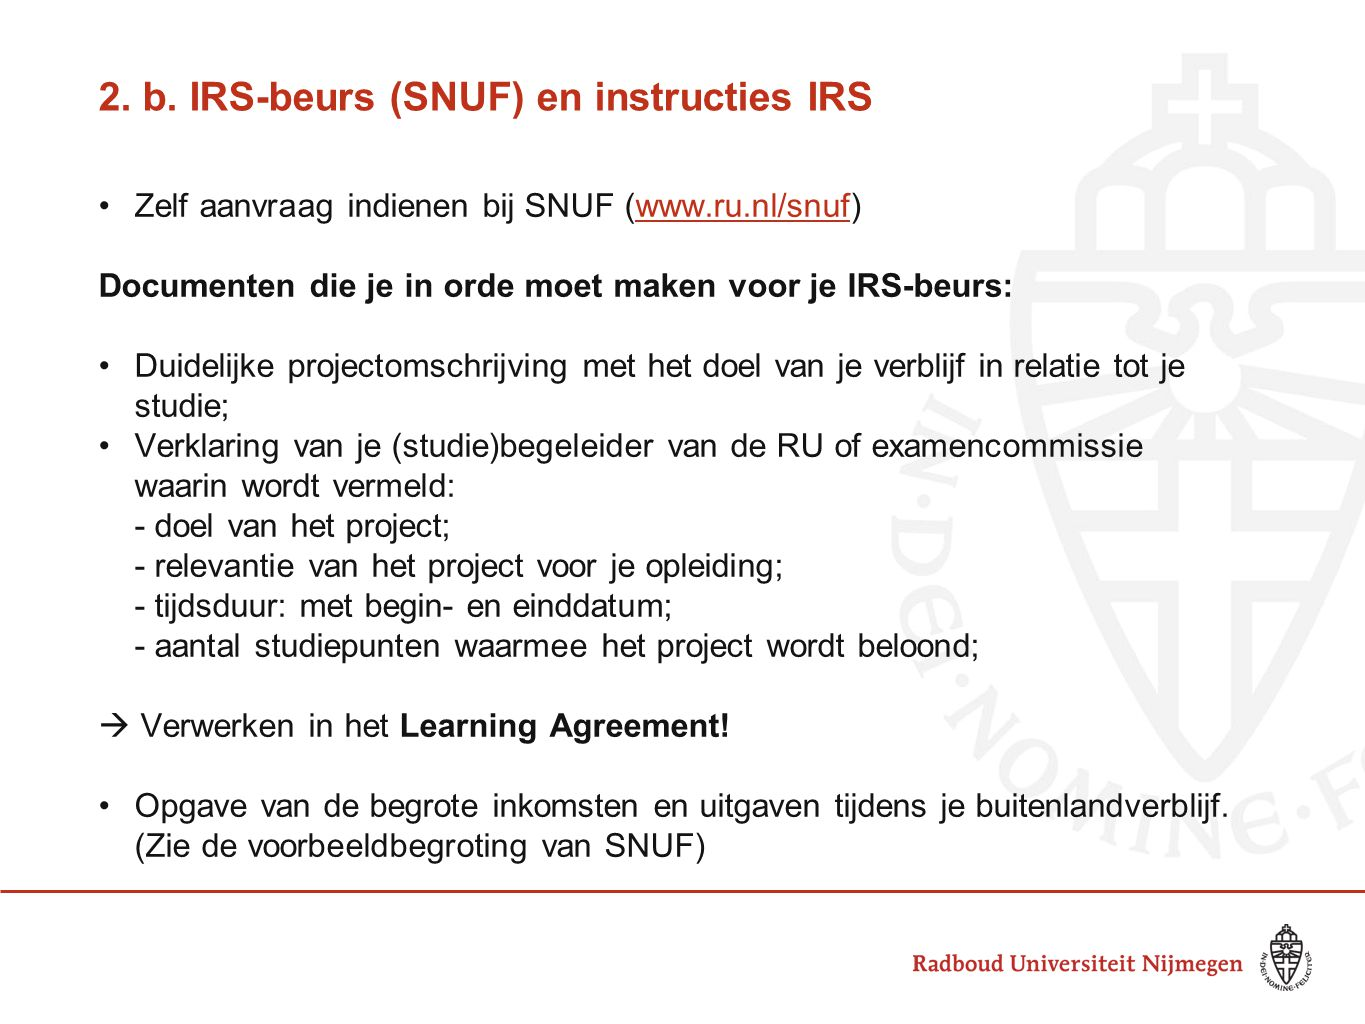 2. b. IRS-beurs (SNUF) en instructies IRS